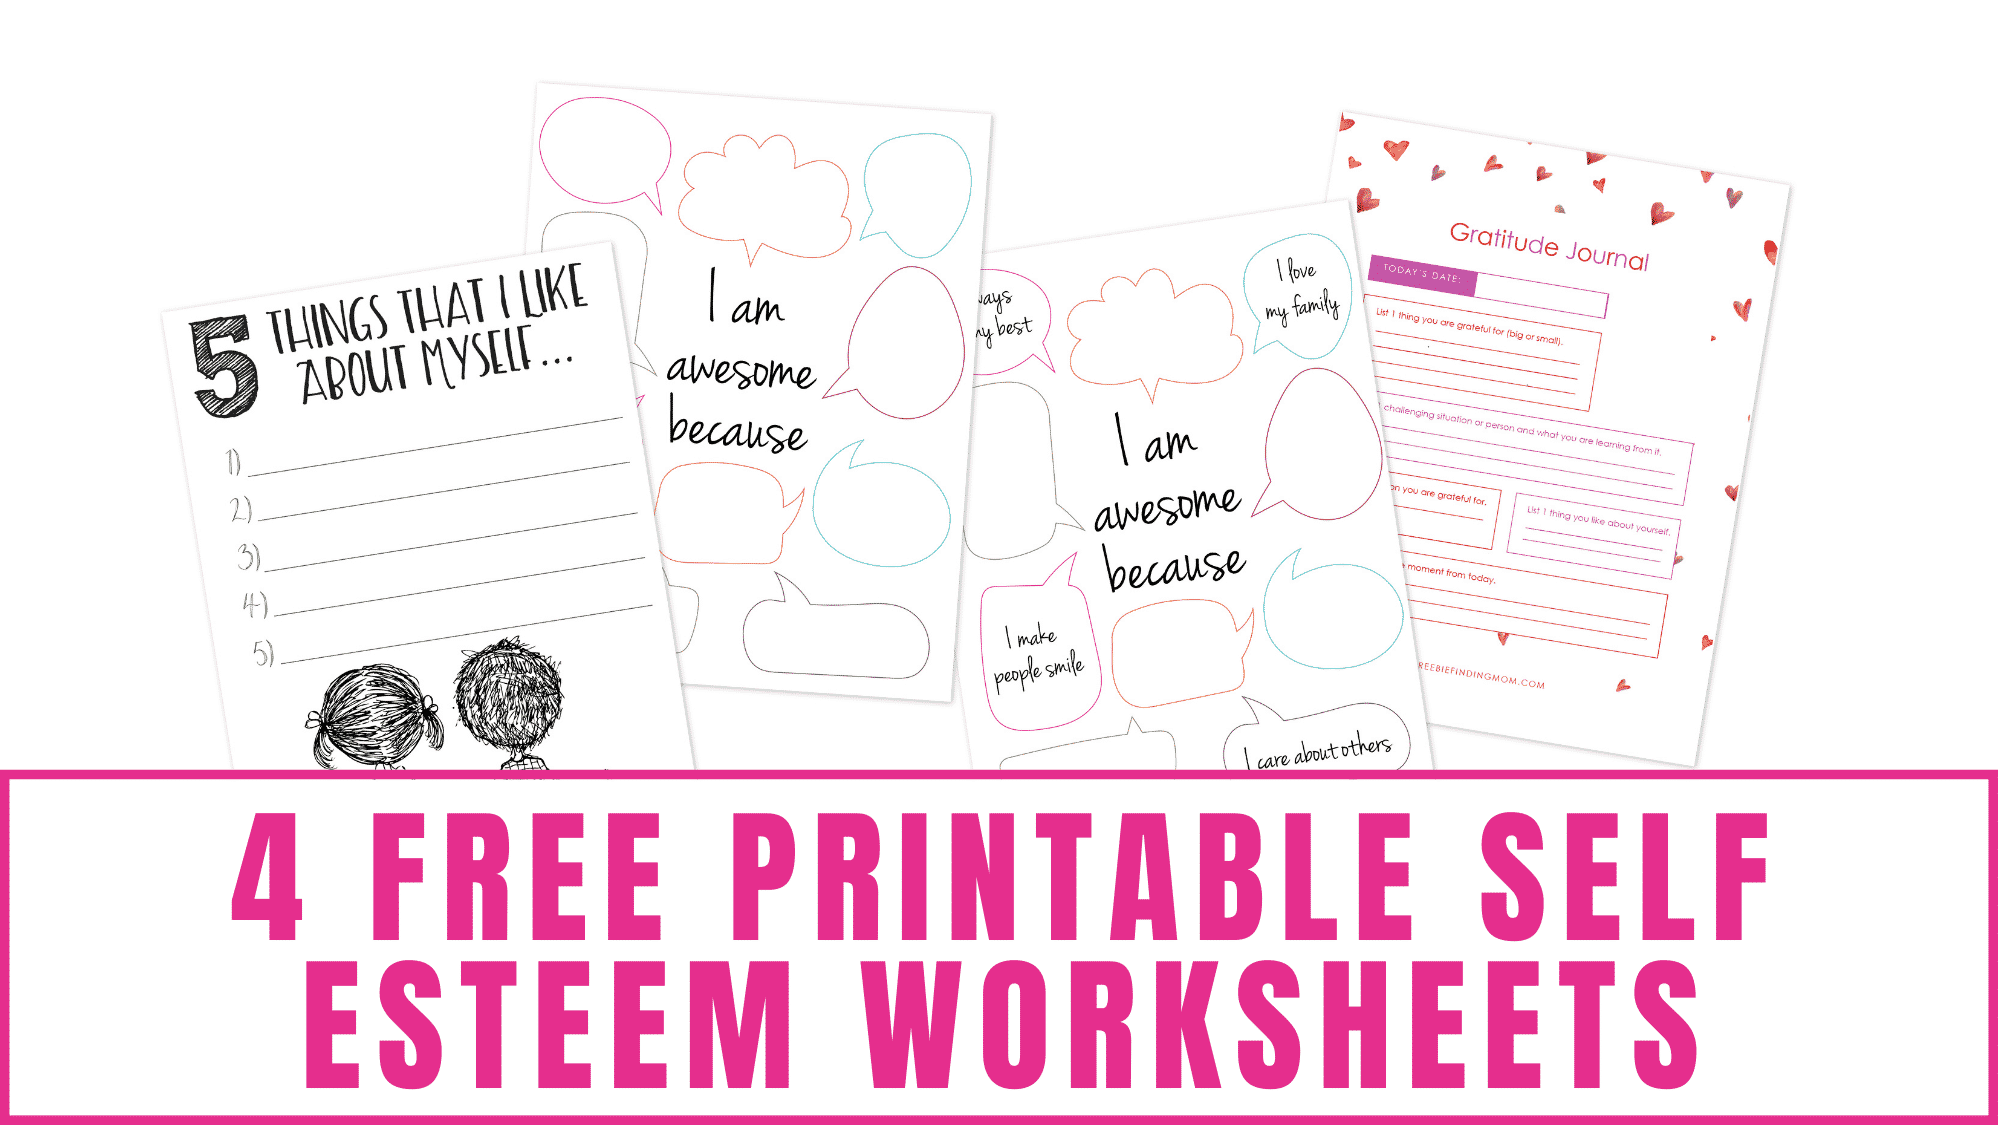 These free self esteem worksheets for kids just asks them to list five things they like about themselves.